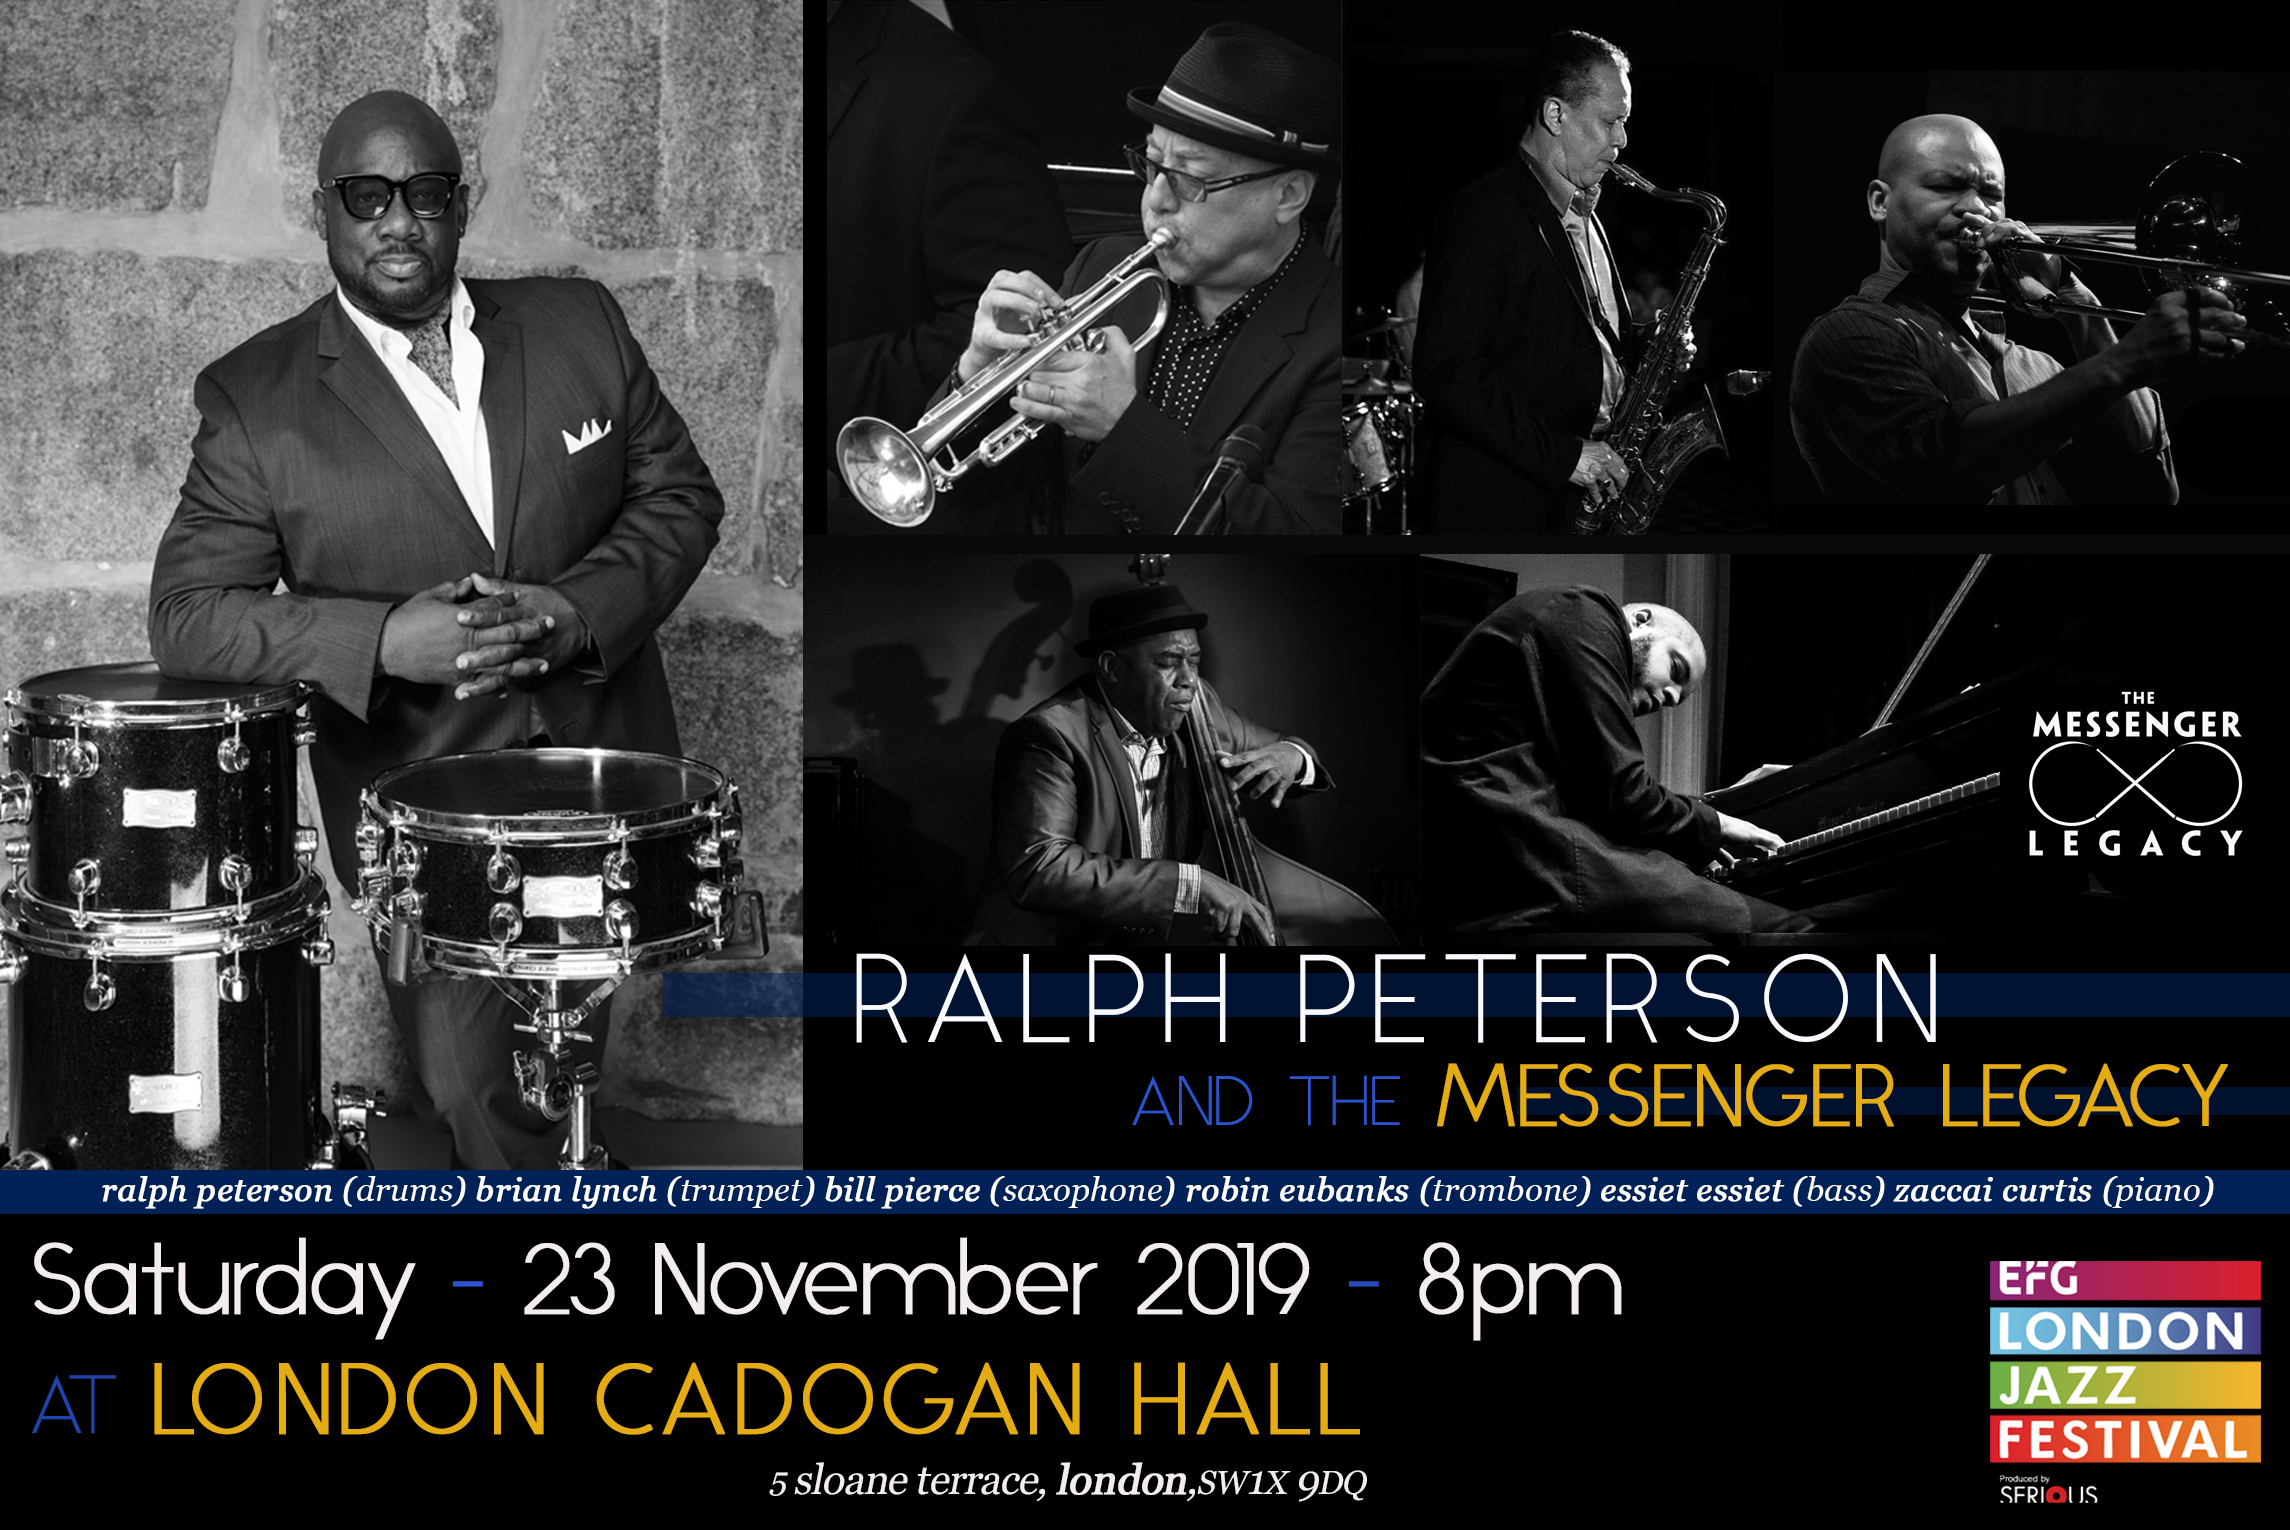 JAZZFM: Ruth Fisher Picks Ralph Peterson as London Jazz Fest Recommendation!